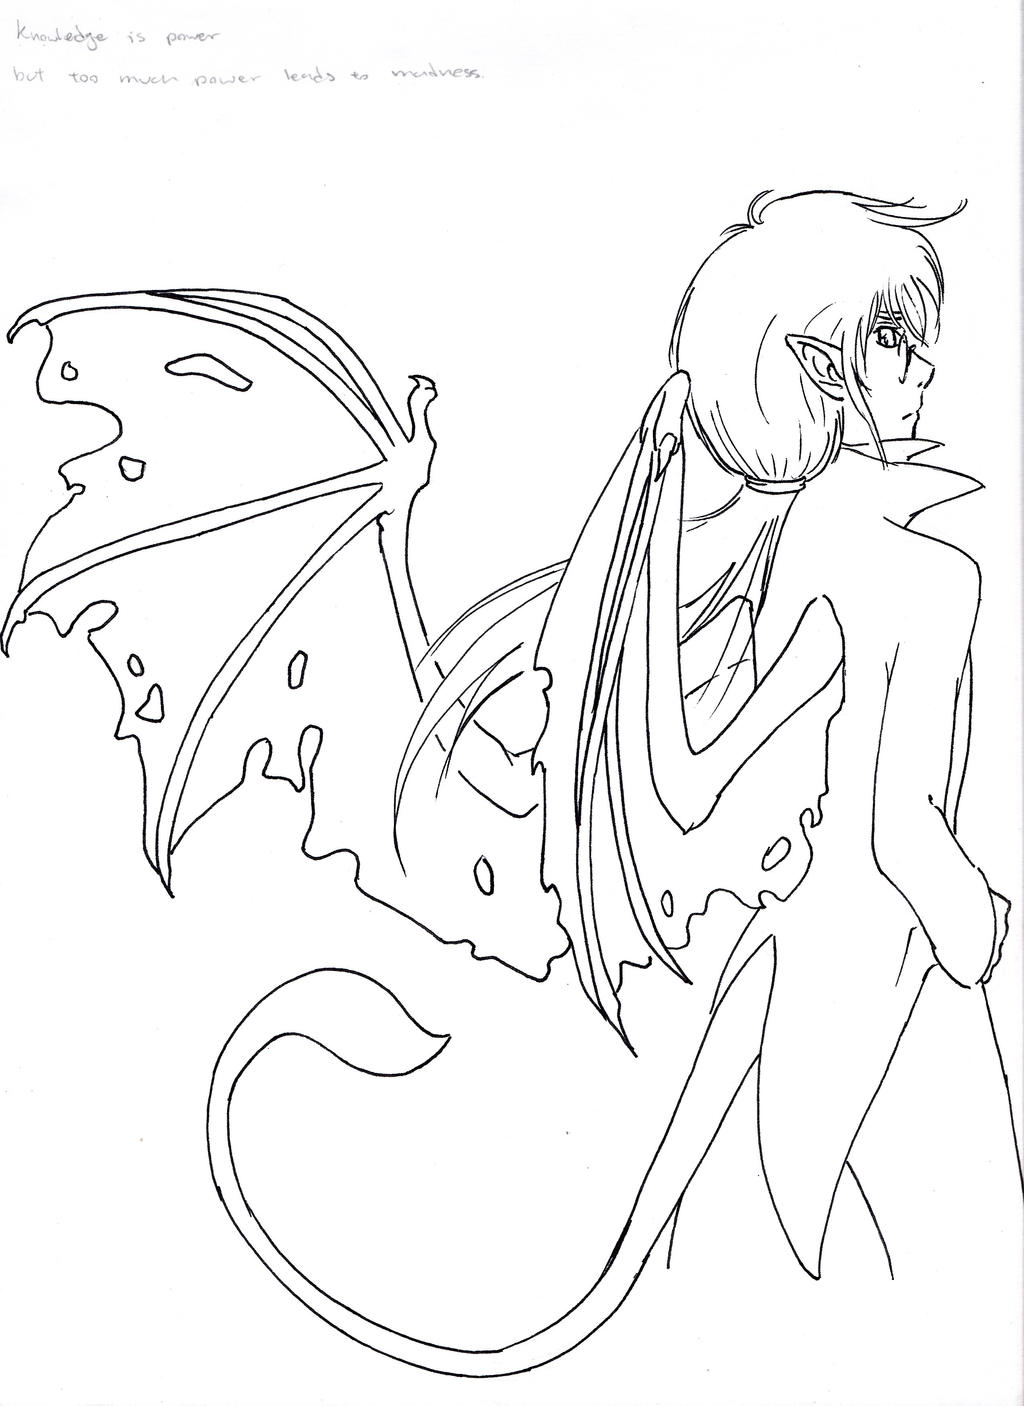 demon dragon coloring pages - photo#27